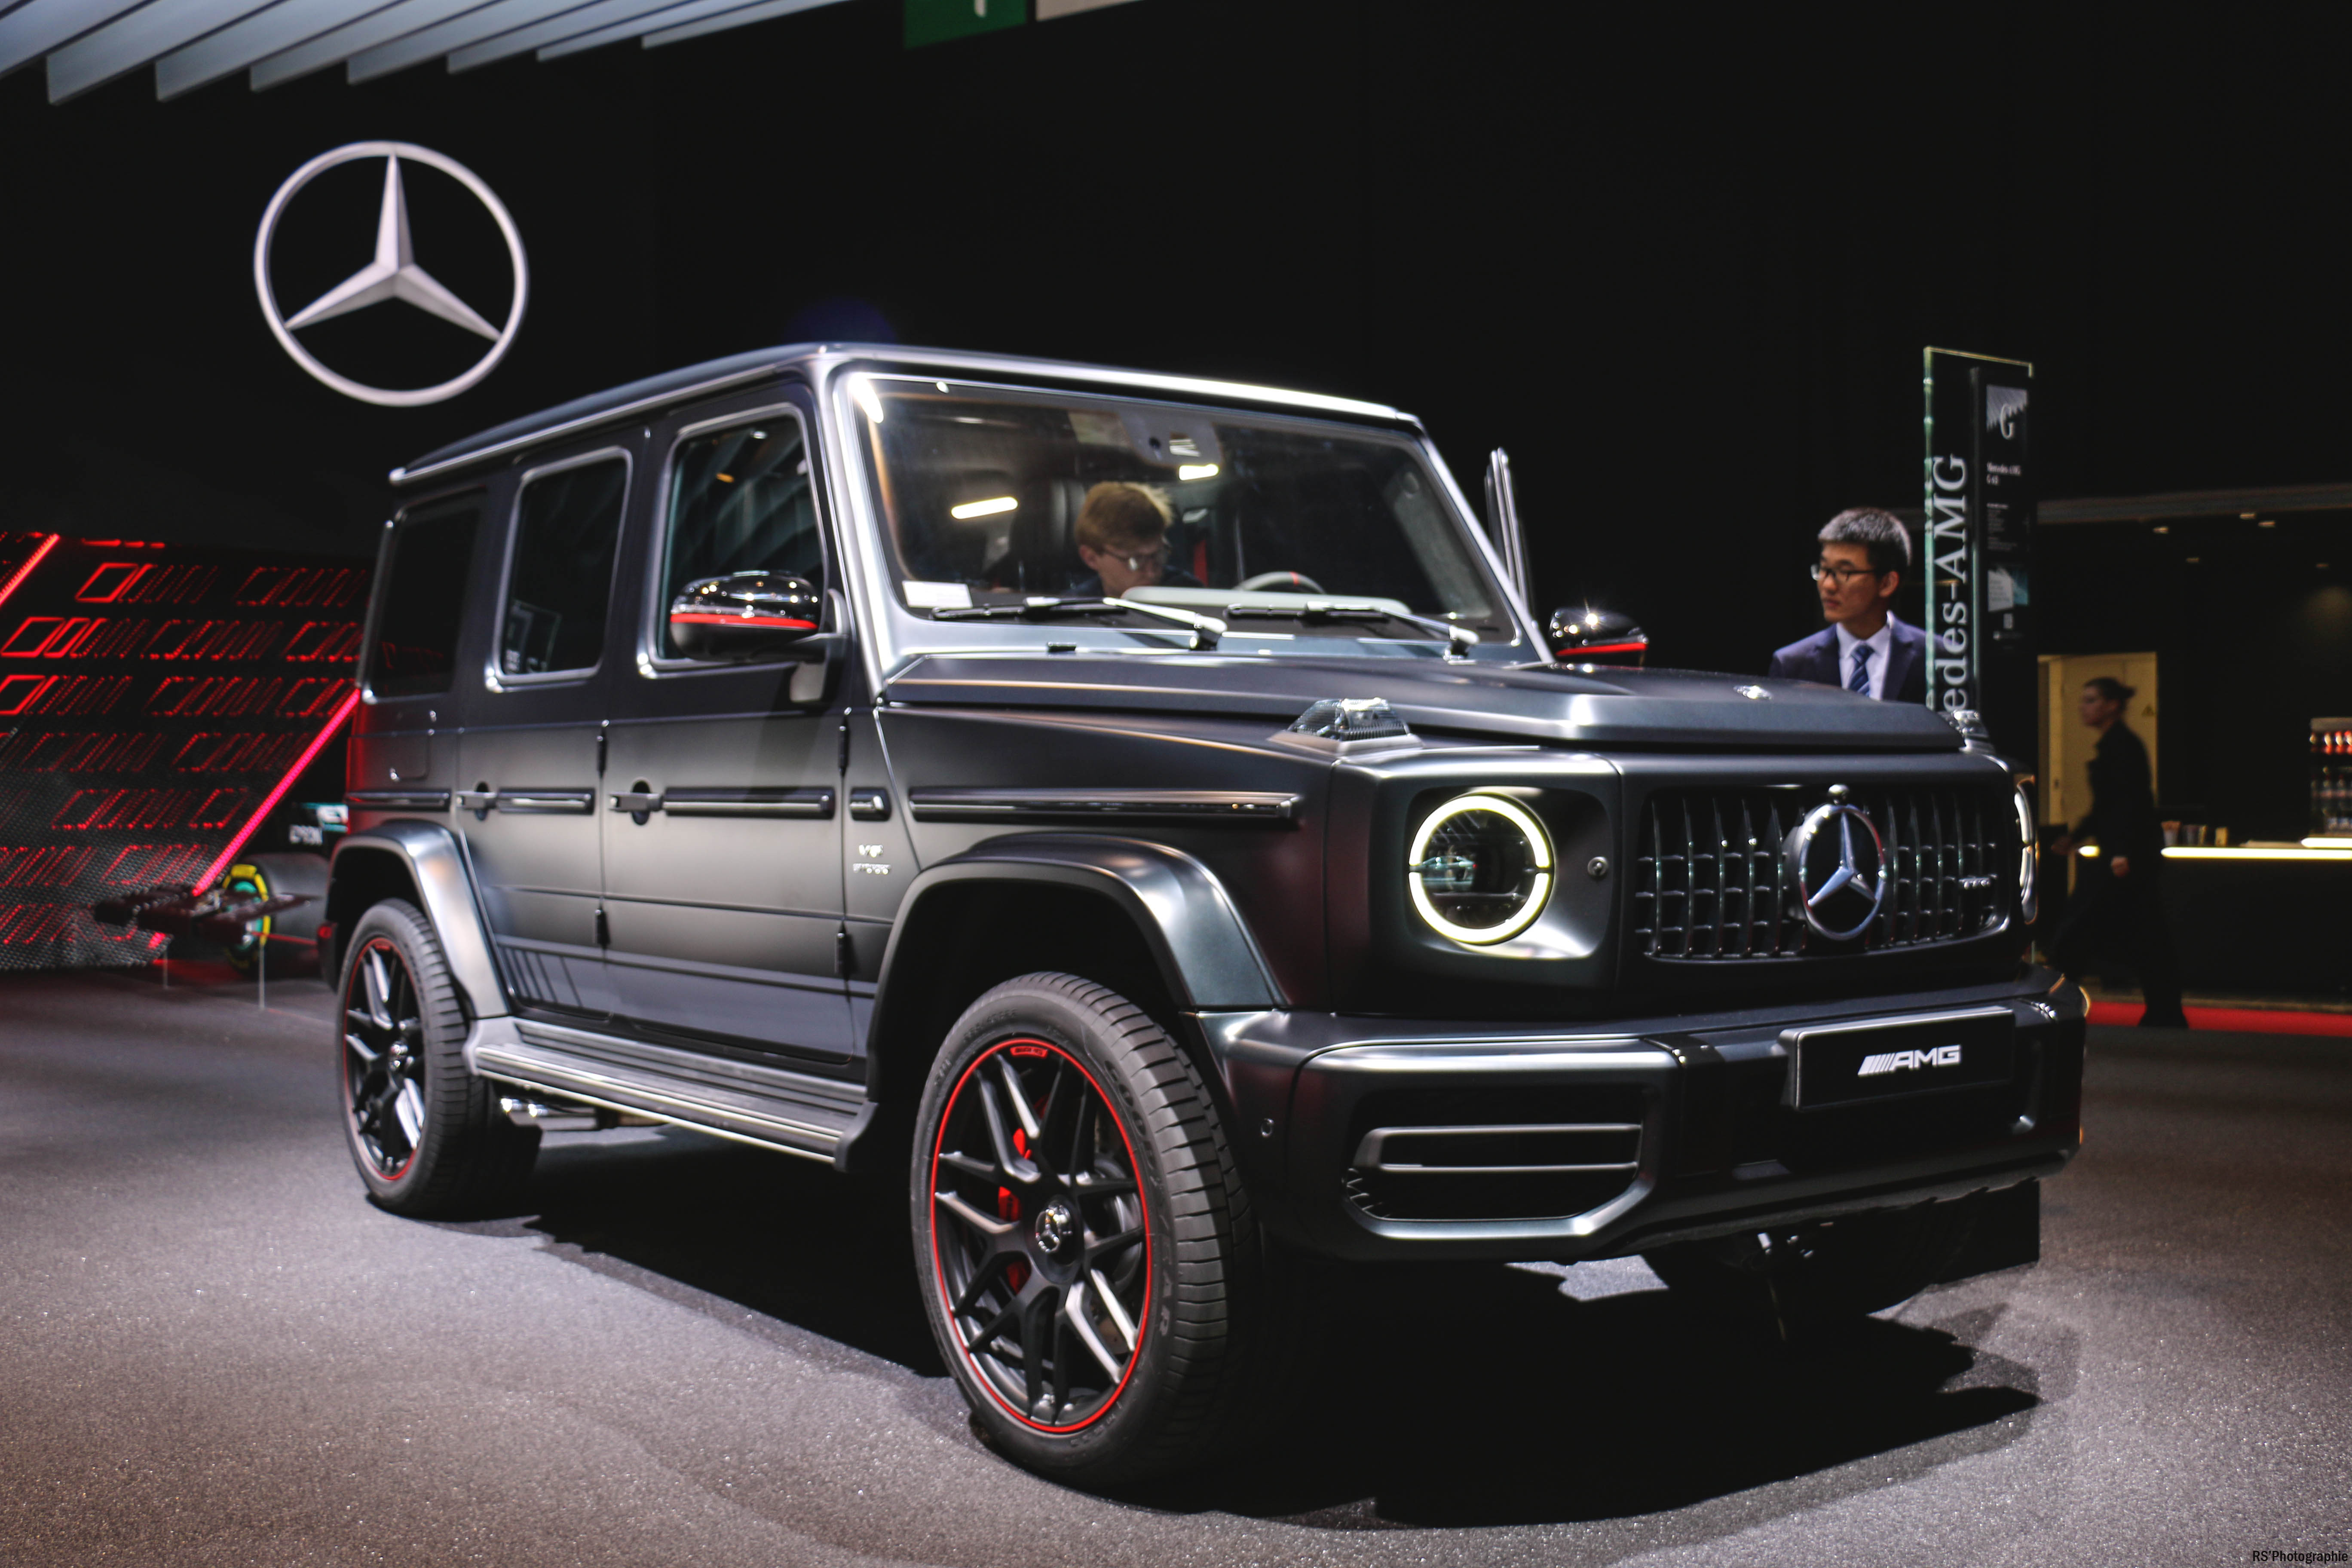 Mercedes-AMG G63 Edition 1 - Paris Motor Show - 2018 - Mondial Auto - photo by Arnaud Demasier RS Photographie